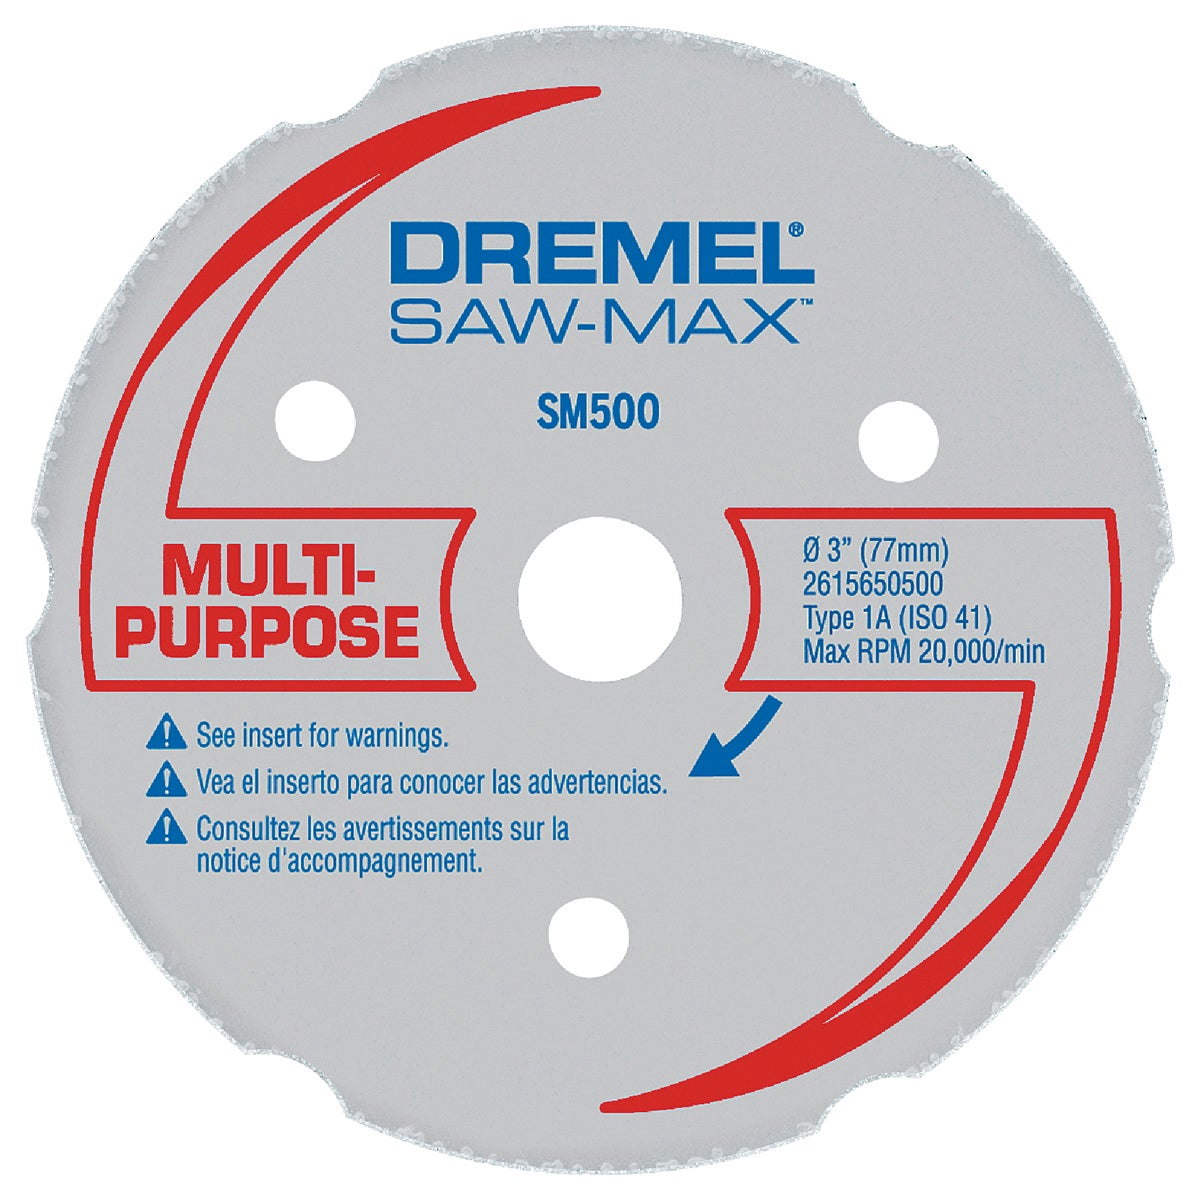 CARBIDE WHEEL - SM500 by Dremel Mfg Co